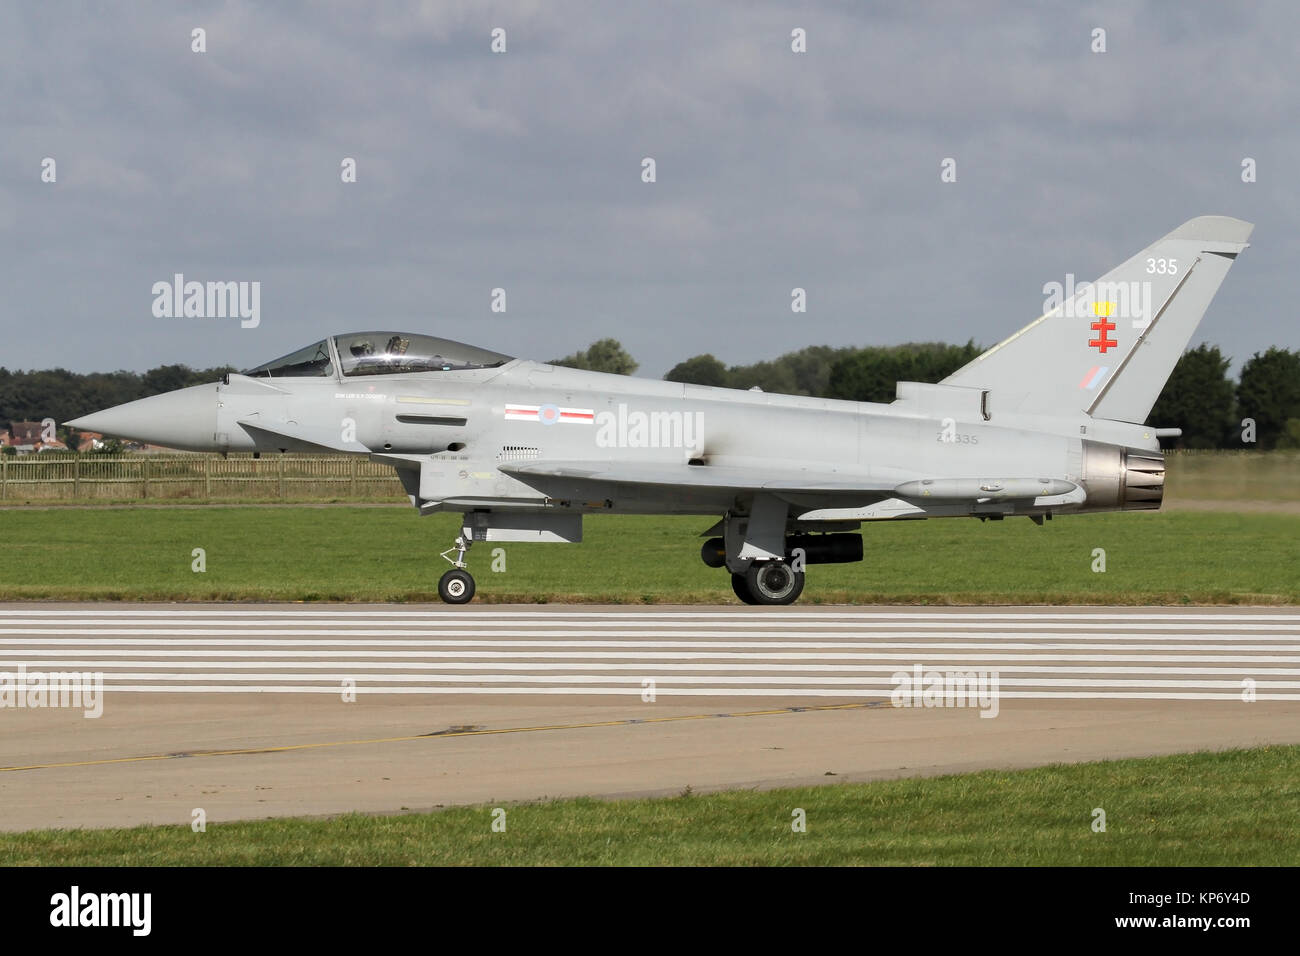 41 Squadron Typhoon Fgr4 Lining Up For Departure At The End Of The Stock Photo Alamy